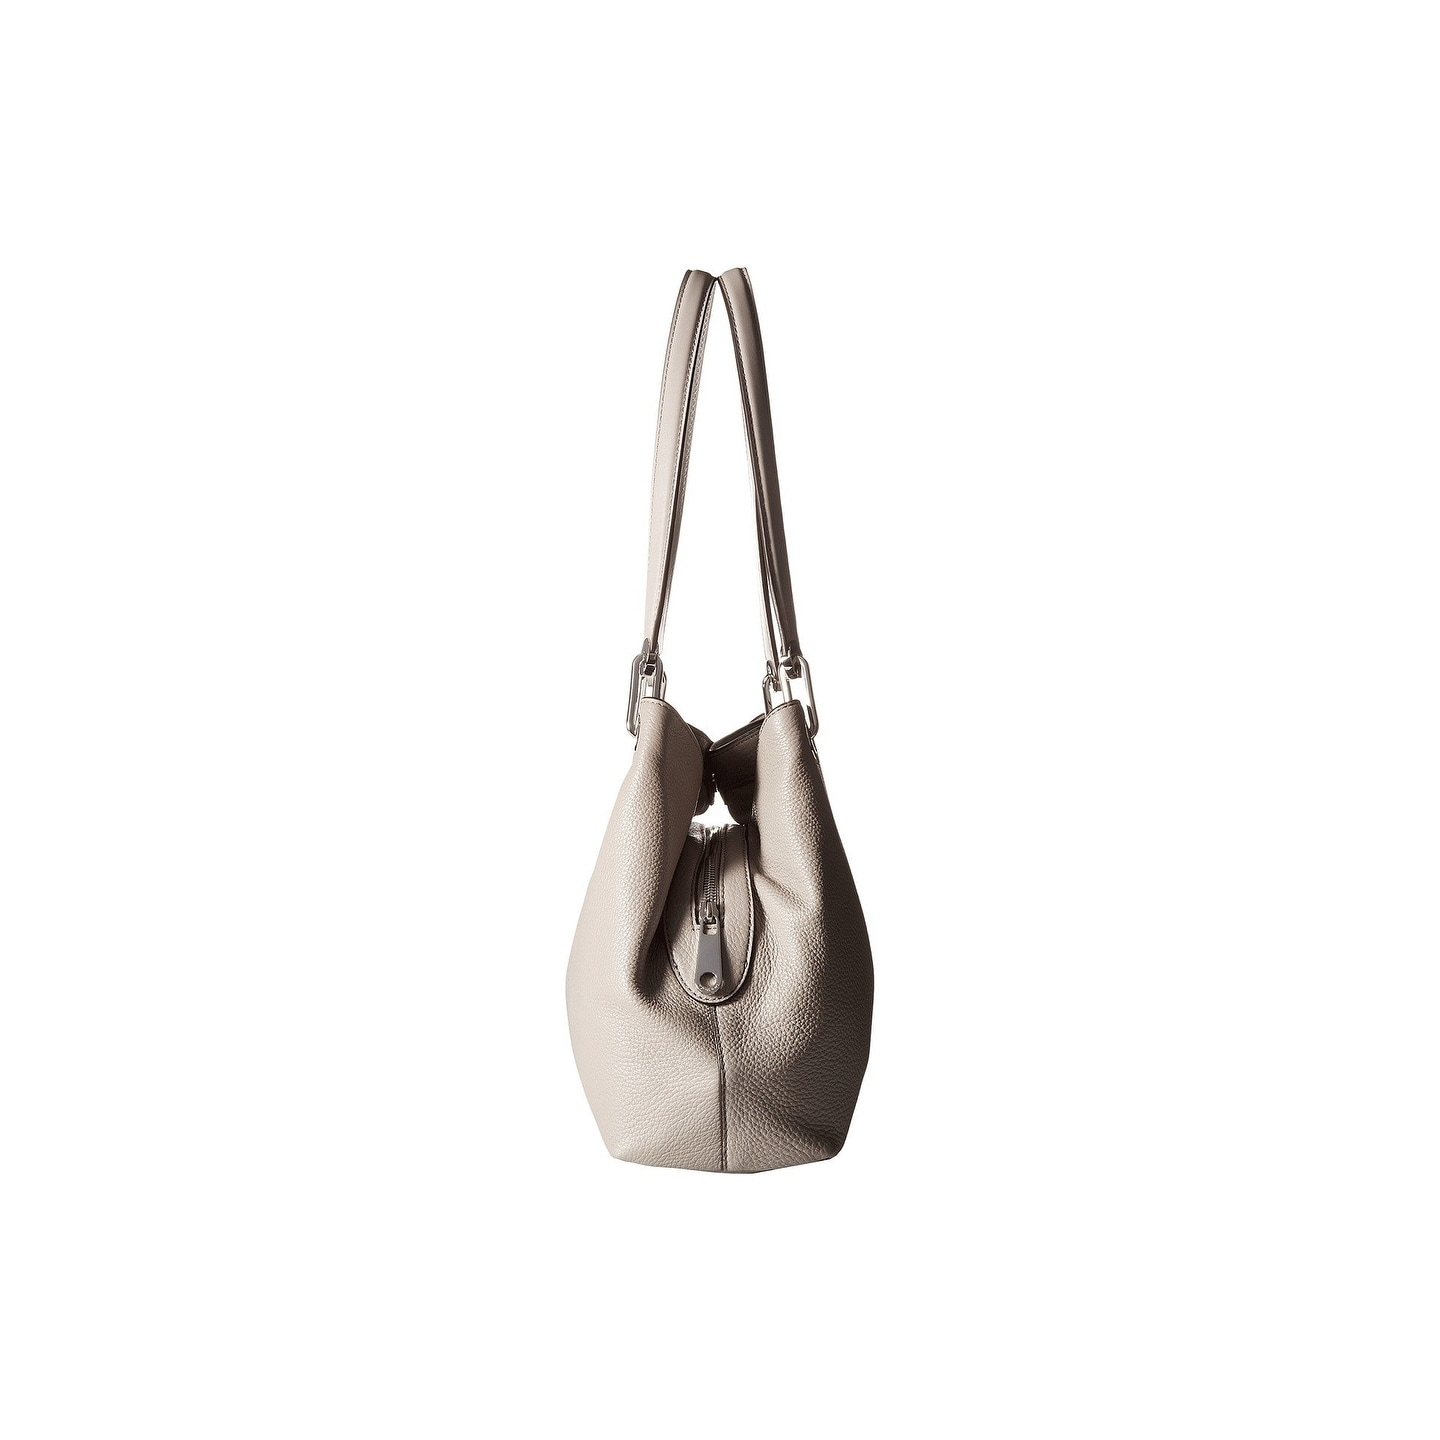 a75316d6a22f Shop Michael Kors Raven Large Pearl Grey Shoulder Tote Bag - Free Shipping  Today - Overstock - 21793748